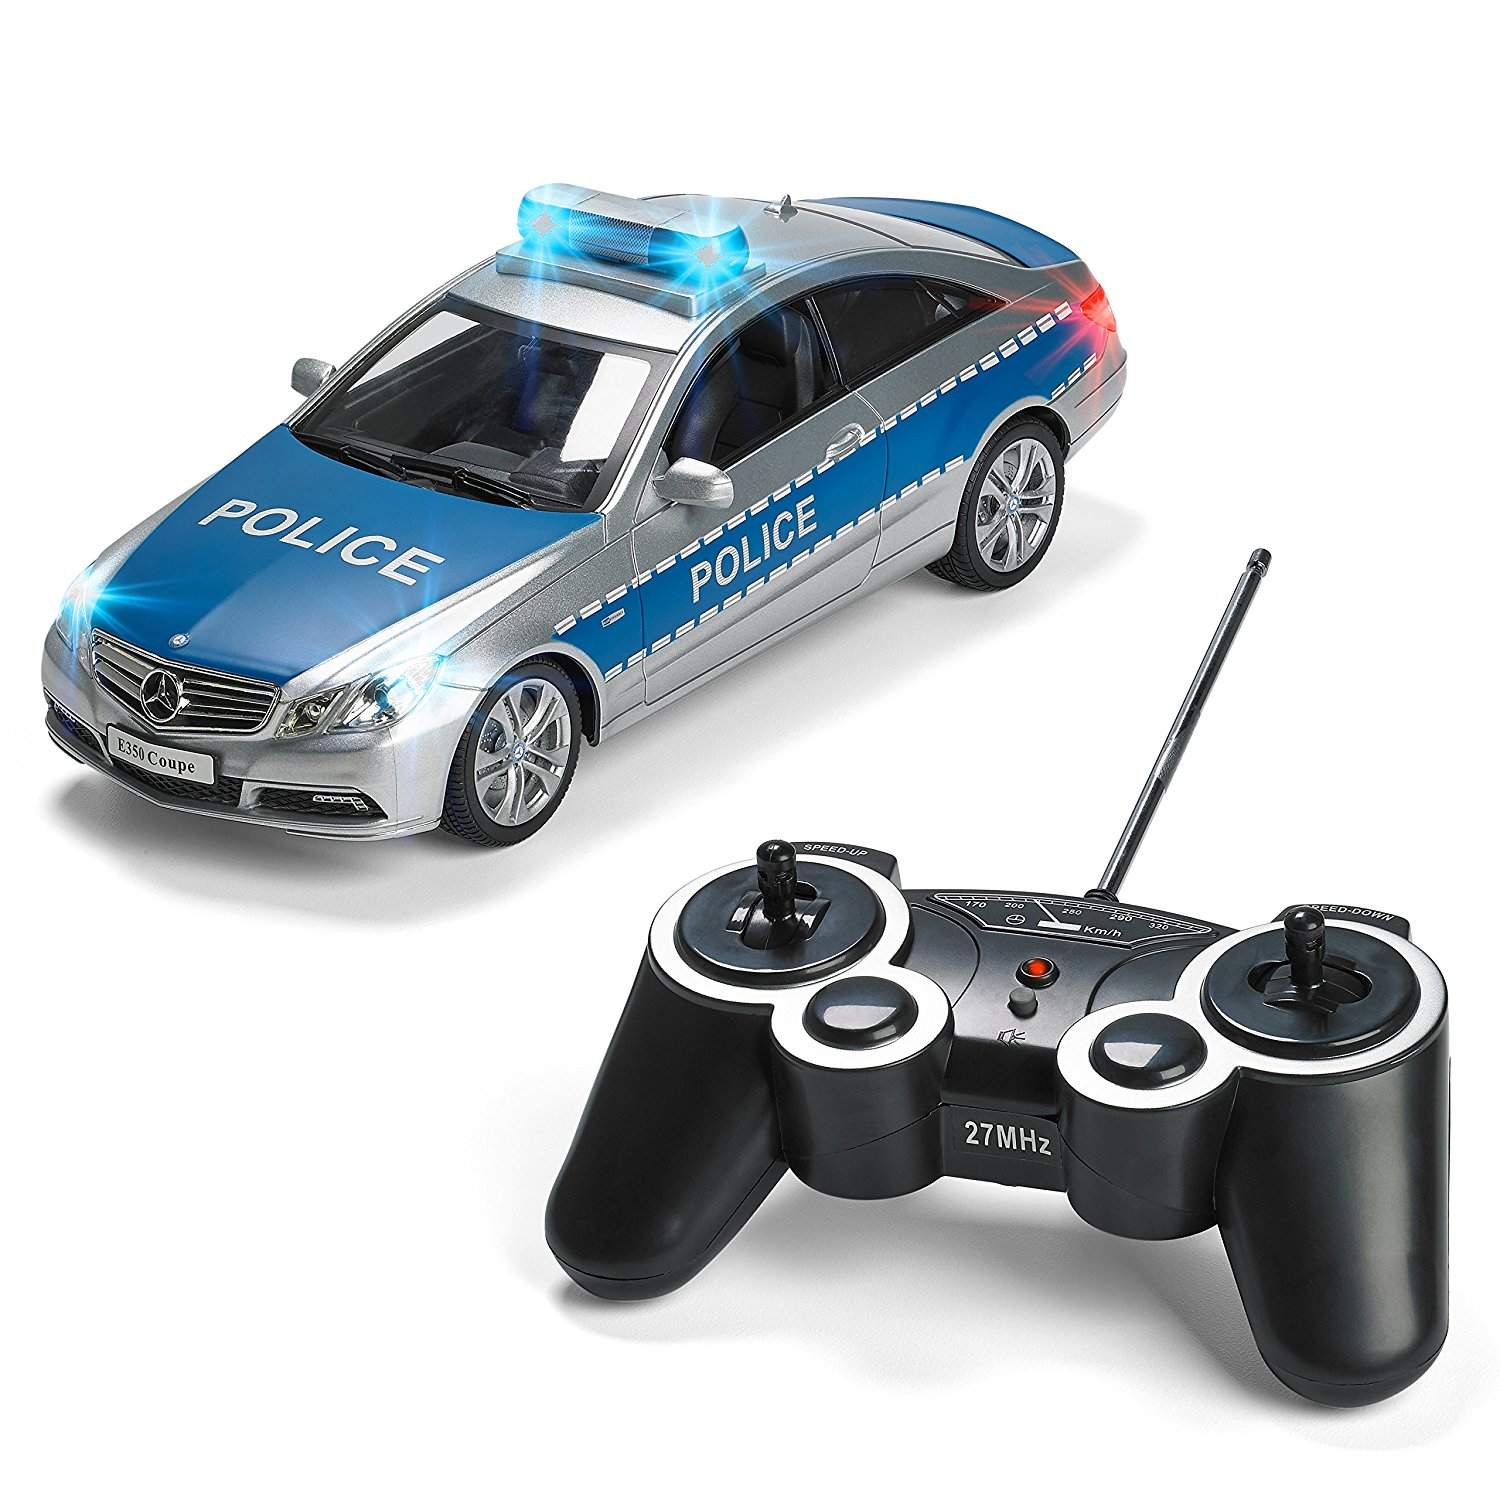 buy mercedes rc police car remote control police car radio control police car great christmas. Black Bedroom Furniture Sets. Home Design Ideas